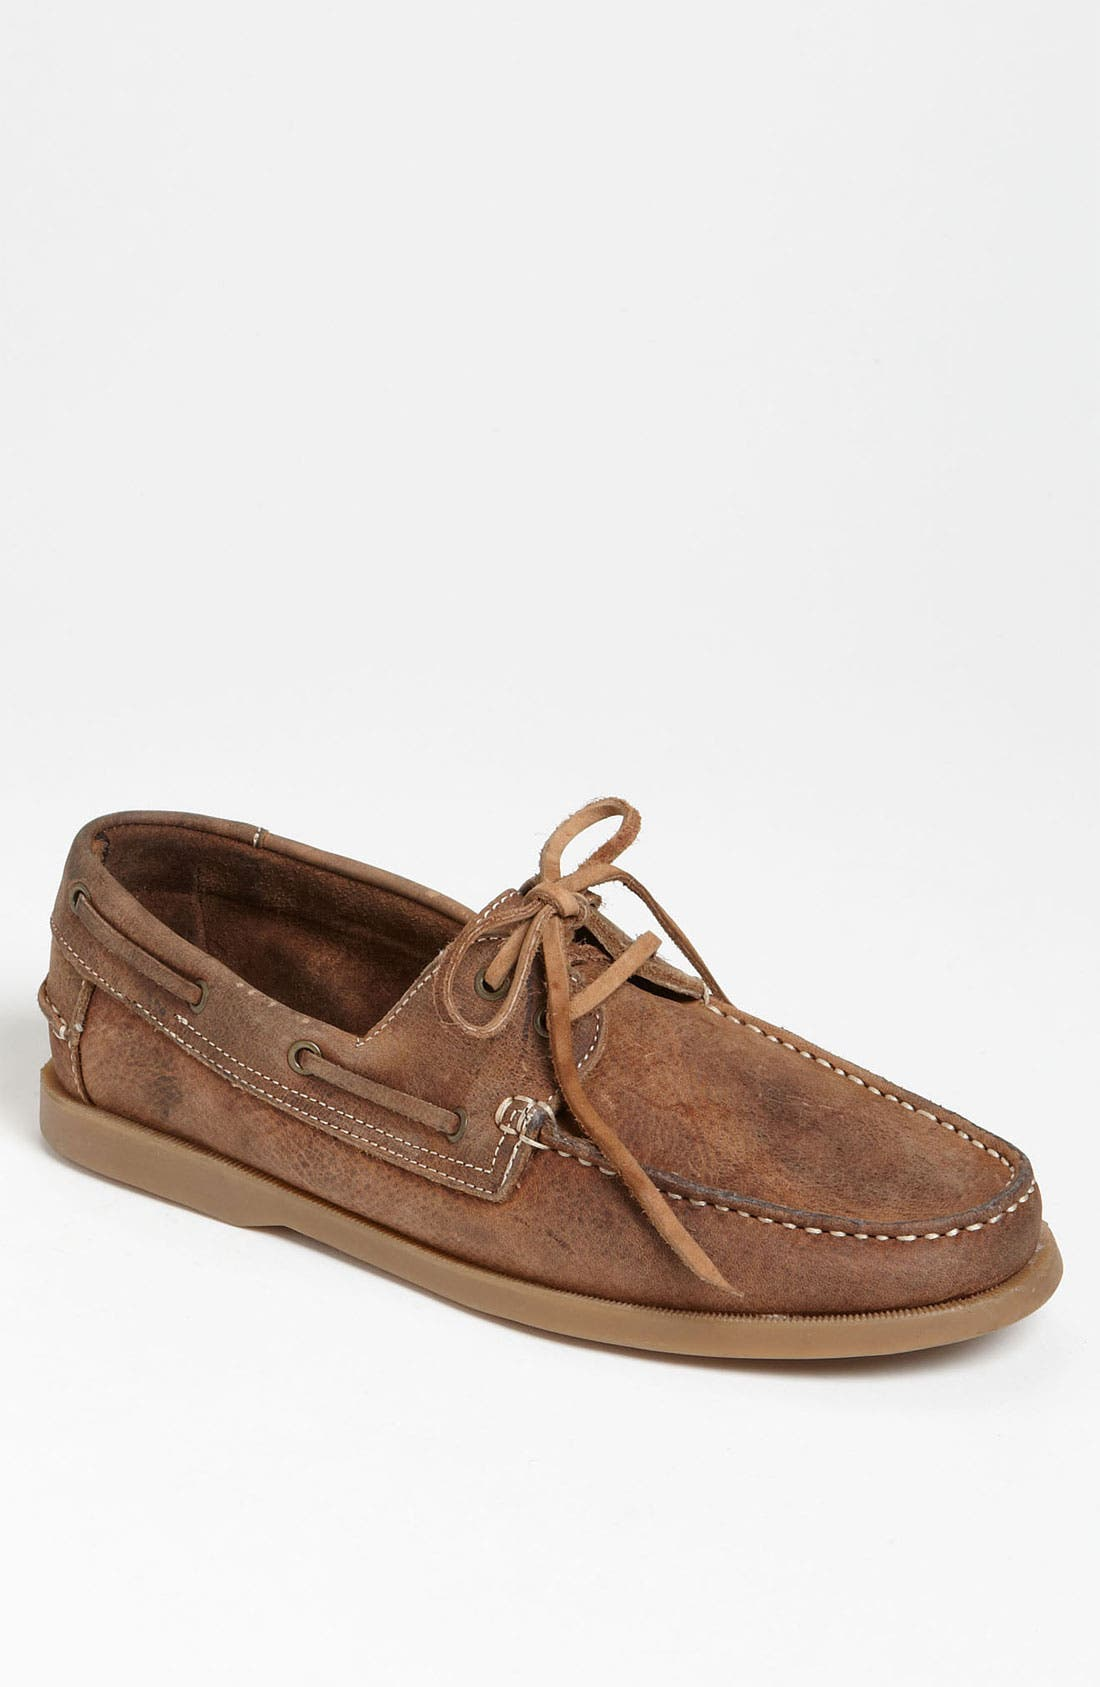 Alternate Image 1 Selected - Bed Stu 'Frank' Boat Shoe